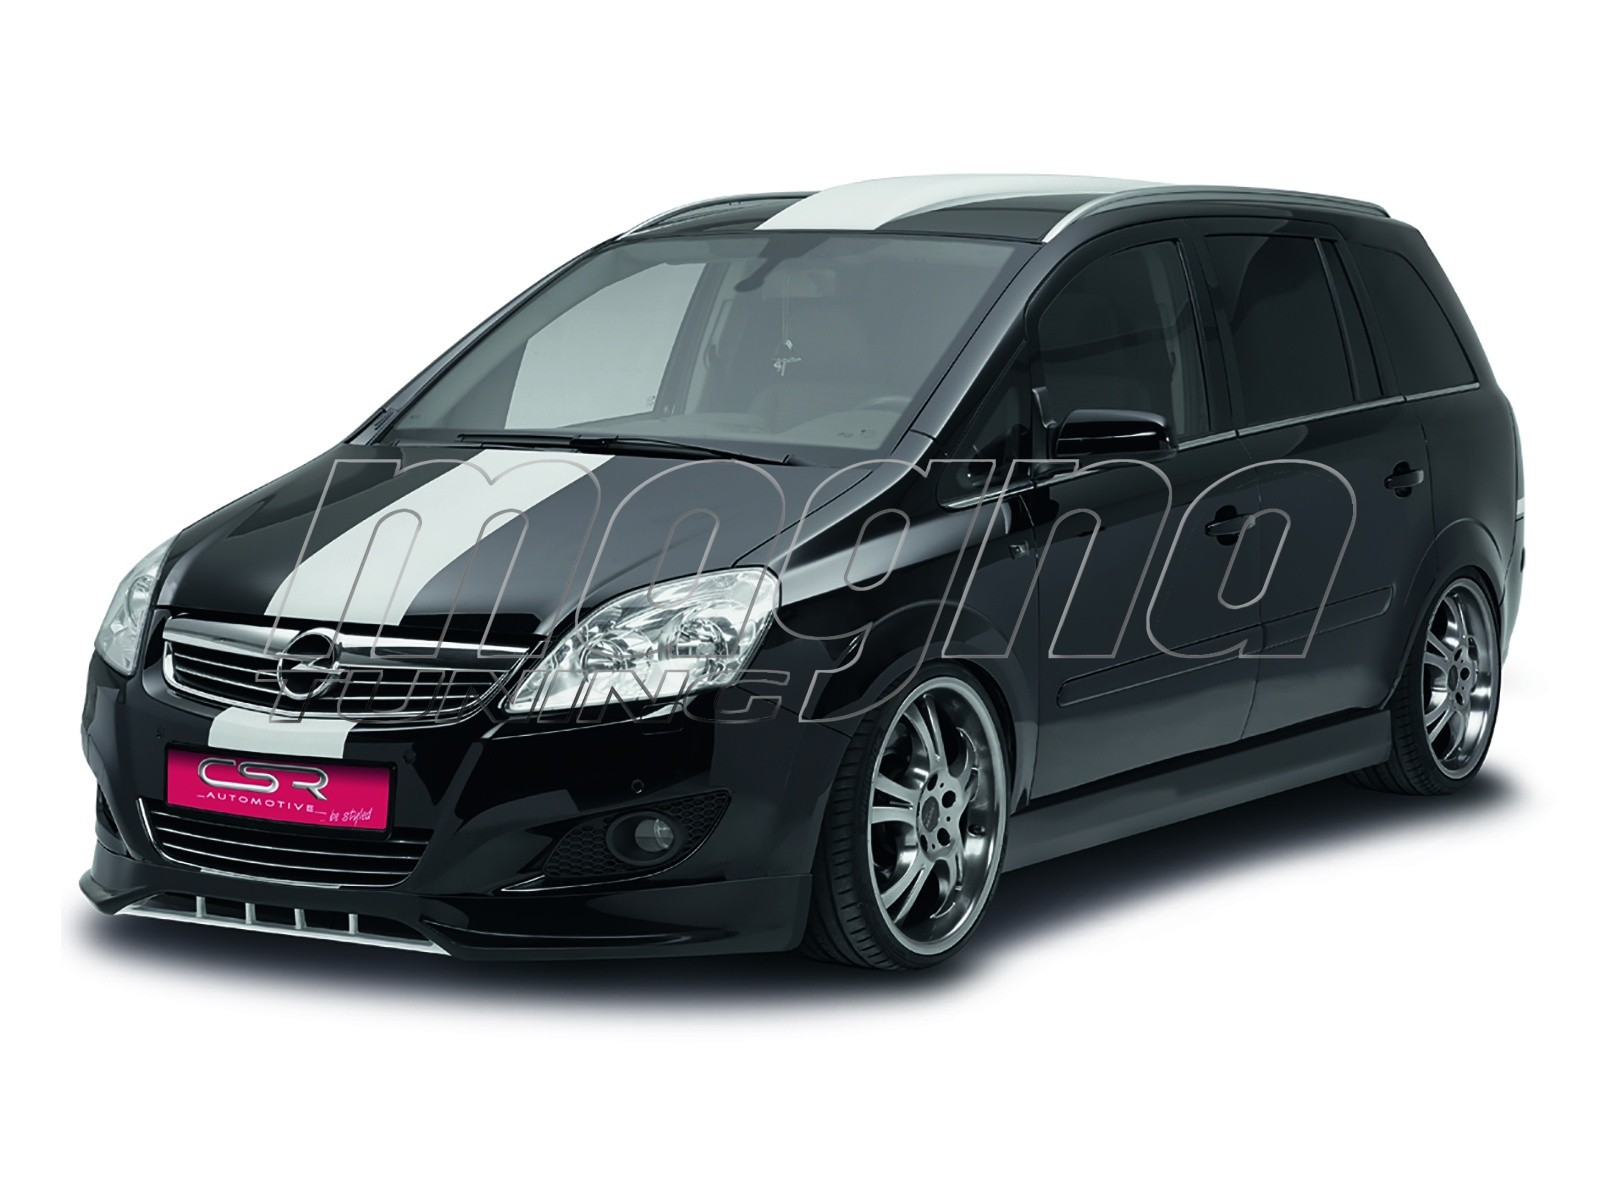 opel zafira b facelift sfx body kit. Black Bedroom Furniture Sets. Home Design Ideas